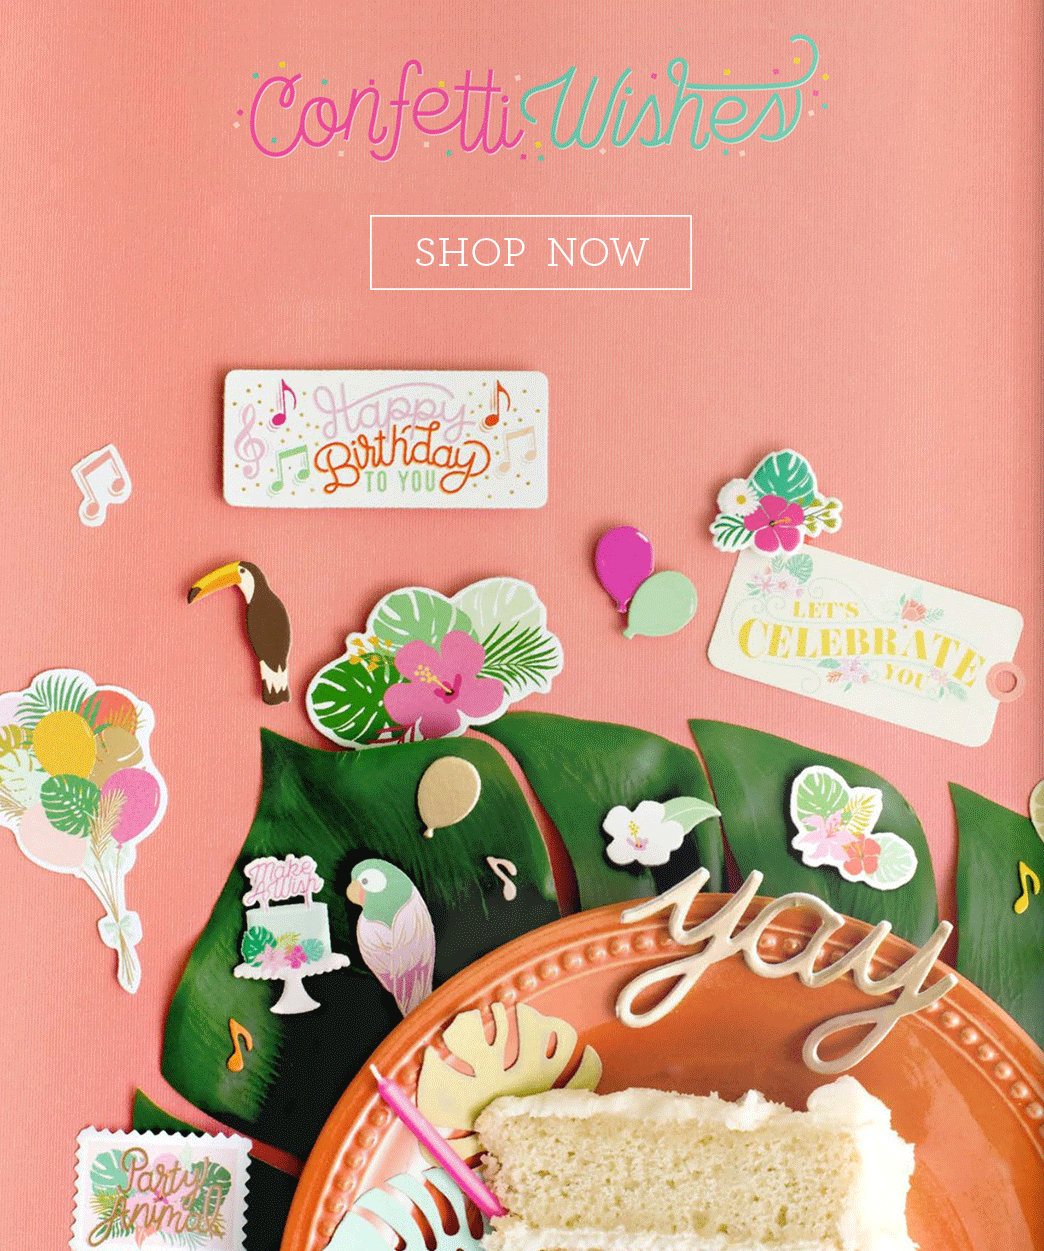 PP-CONFETTI-WISHES-GRAPHIC-